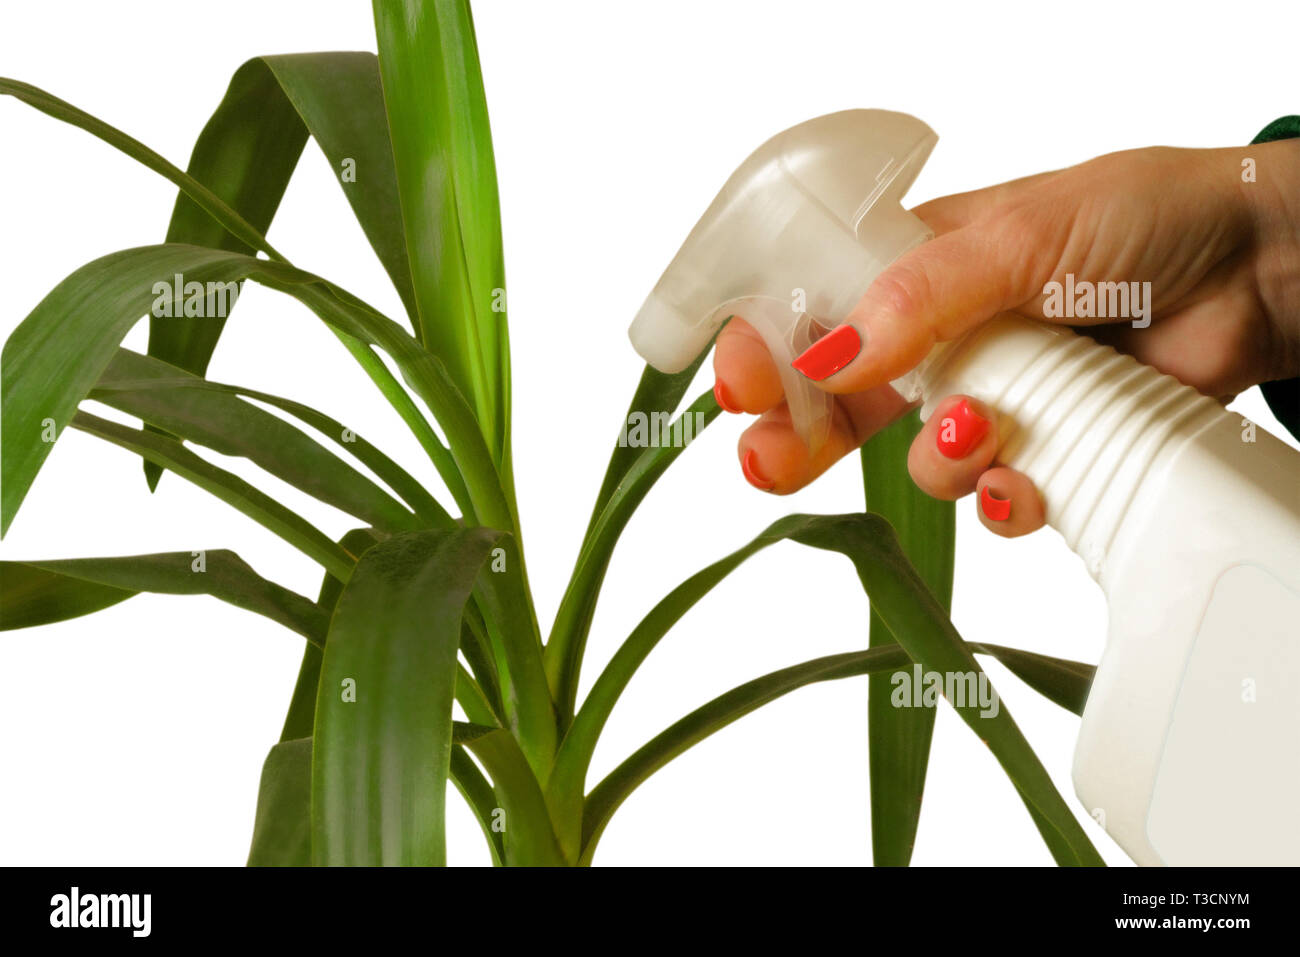 Woman hand cleans the green leaves of yucca flower with water spray. Housework routine or hobby care of indoor plant. Isolated macro lifestyle image - Stock Image